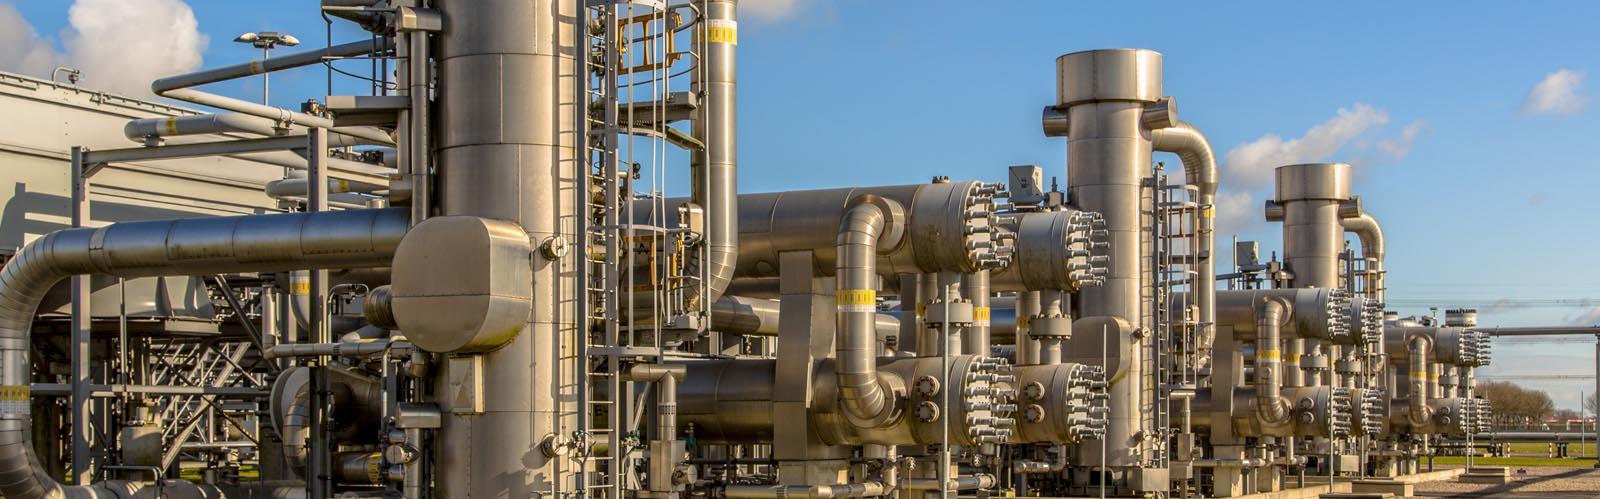 Effectively automate your LNG process